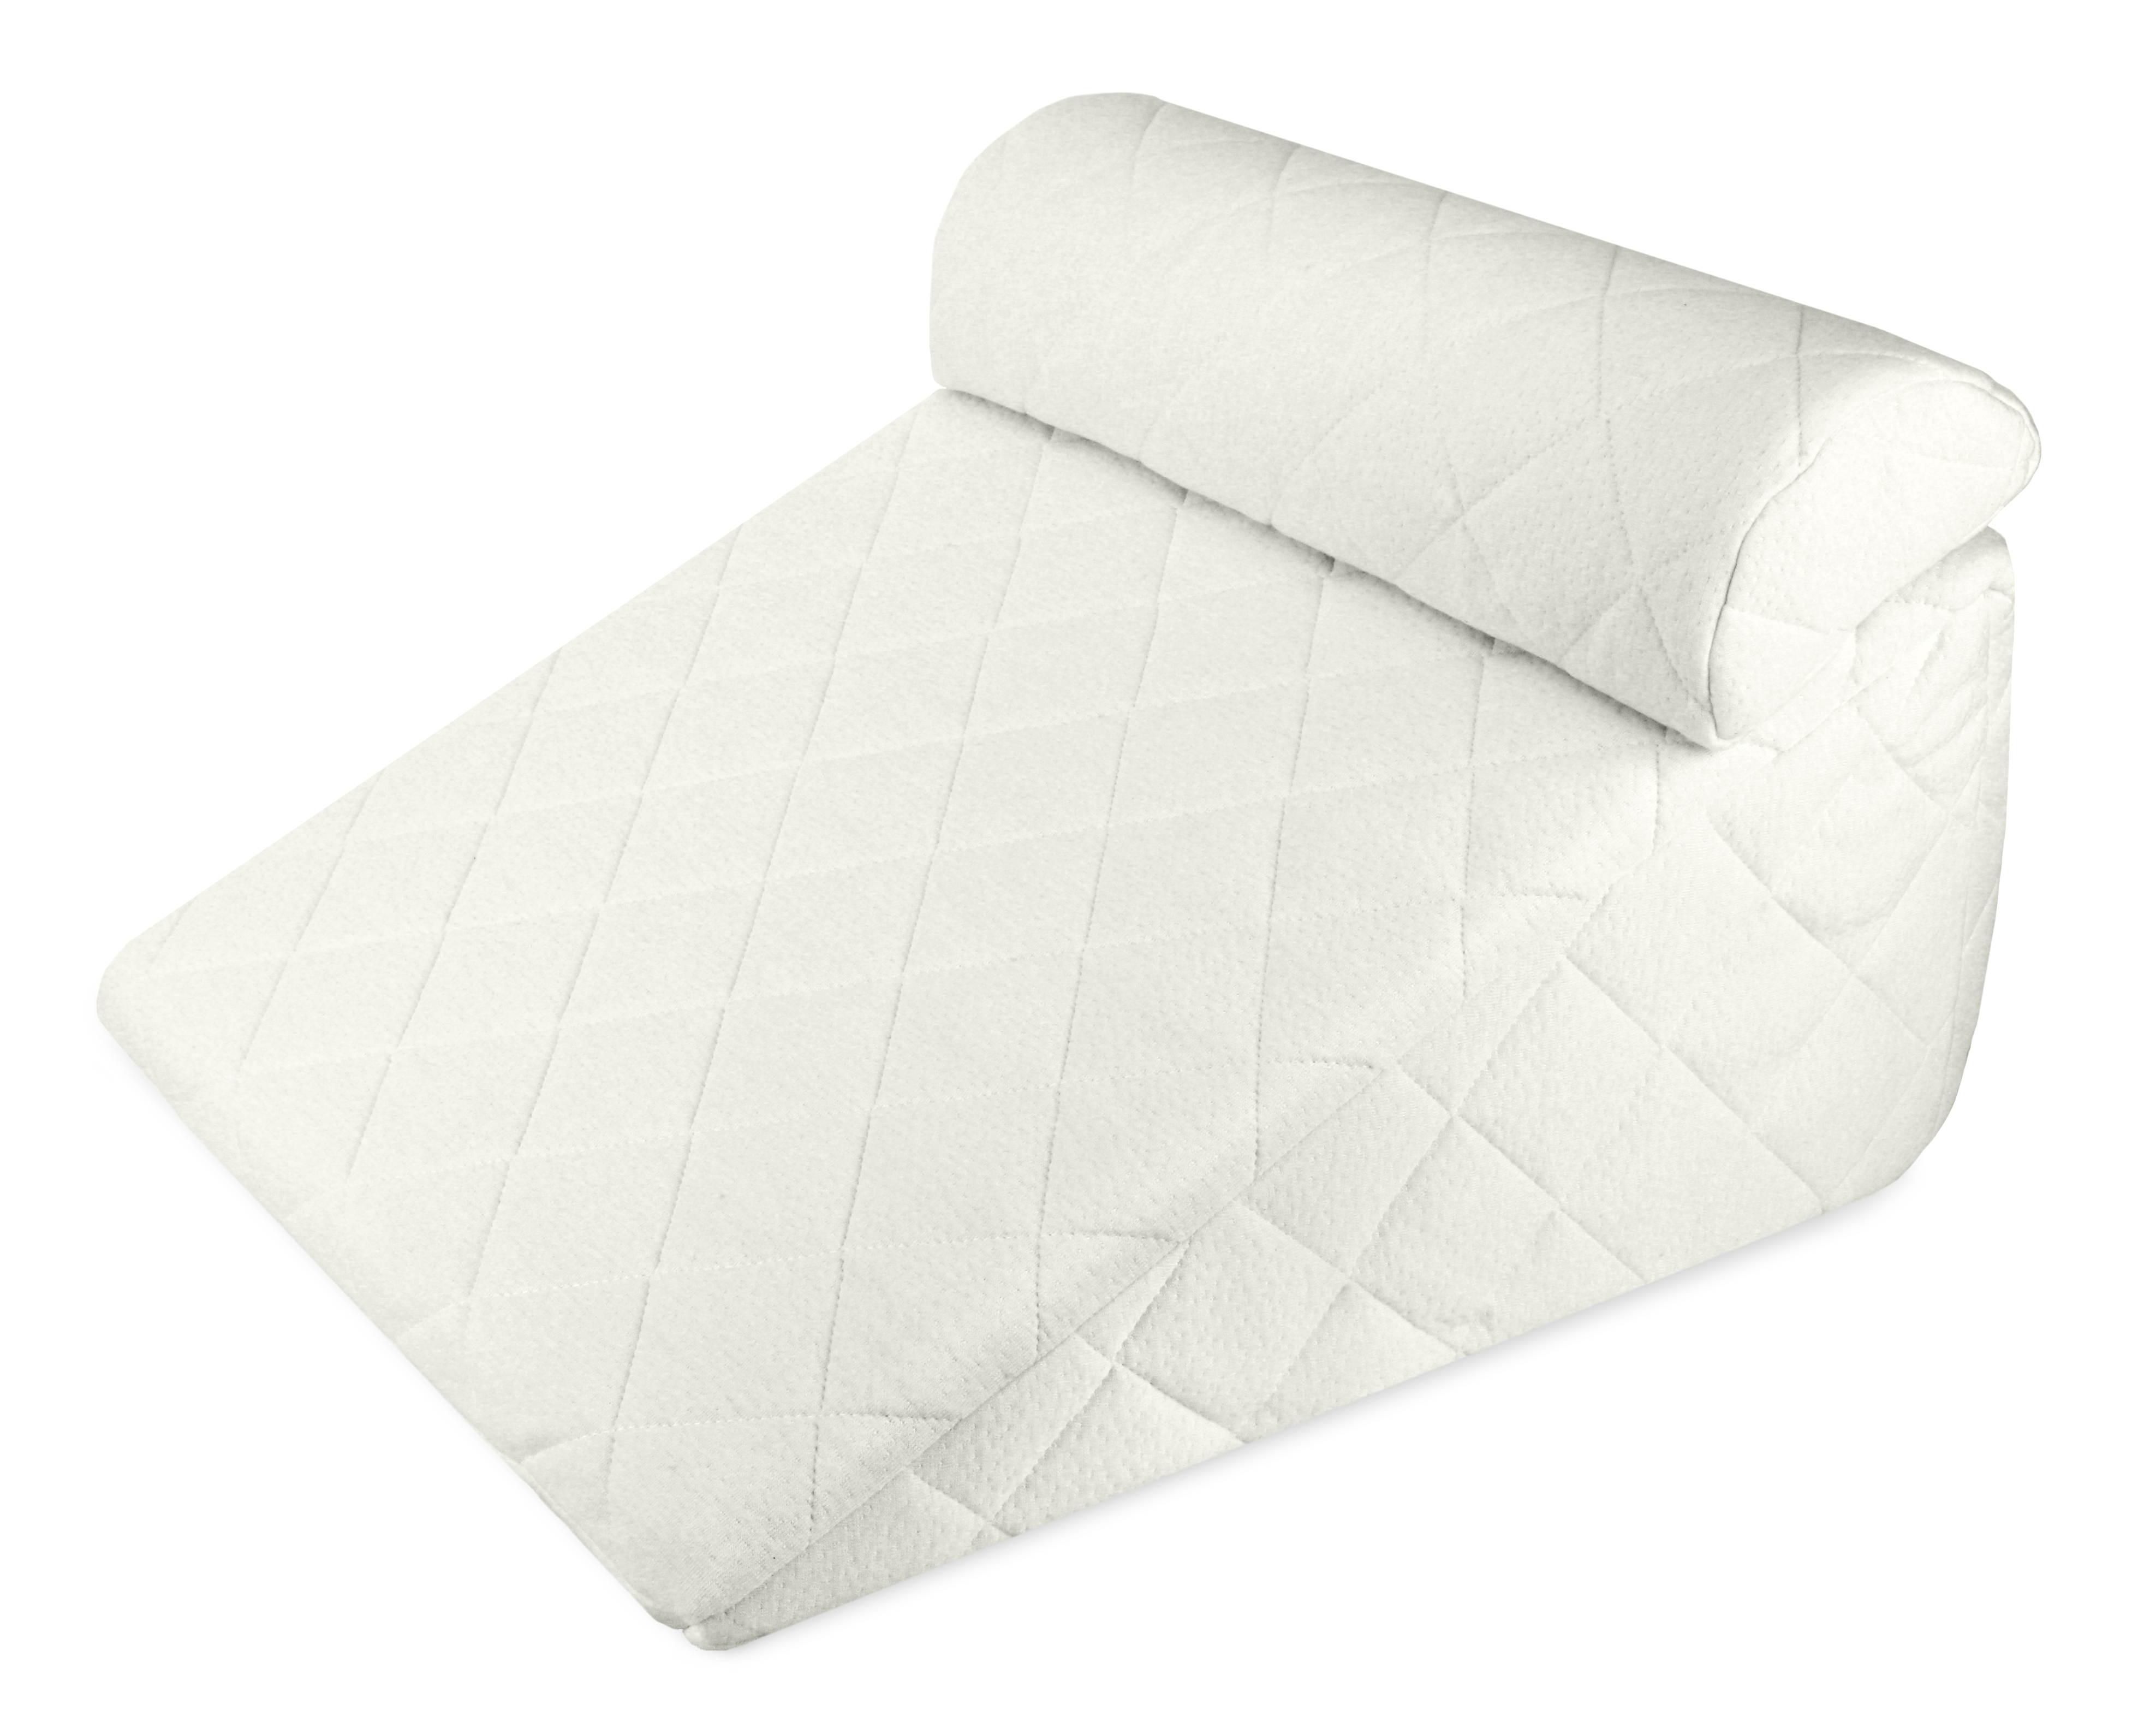 bed wedge pillow at walmart